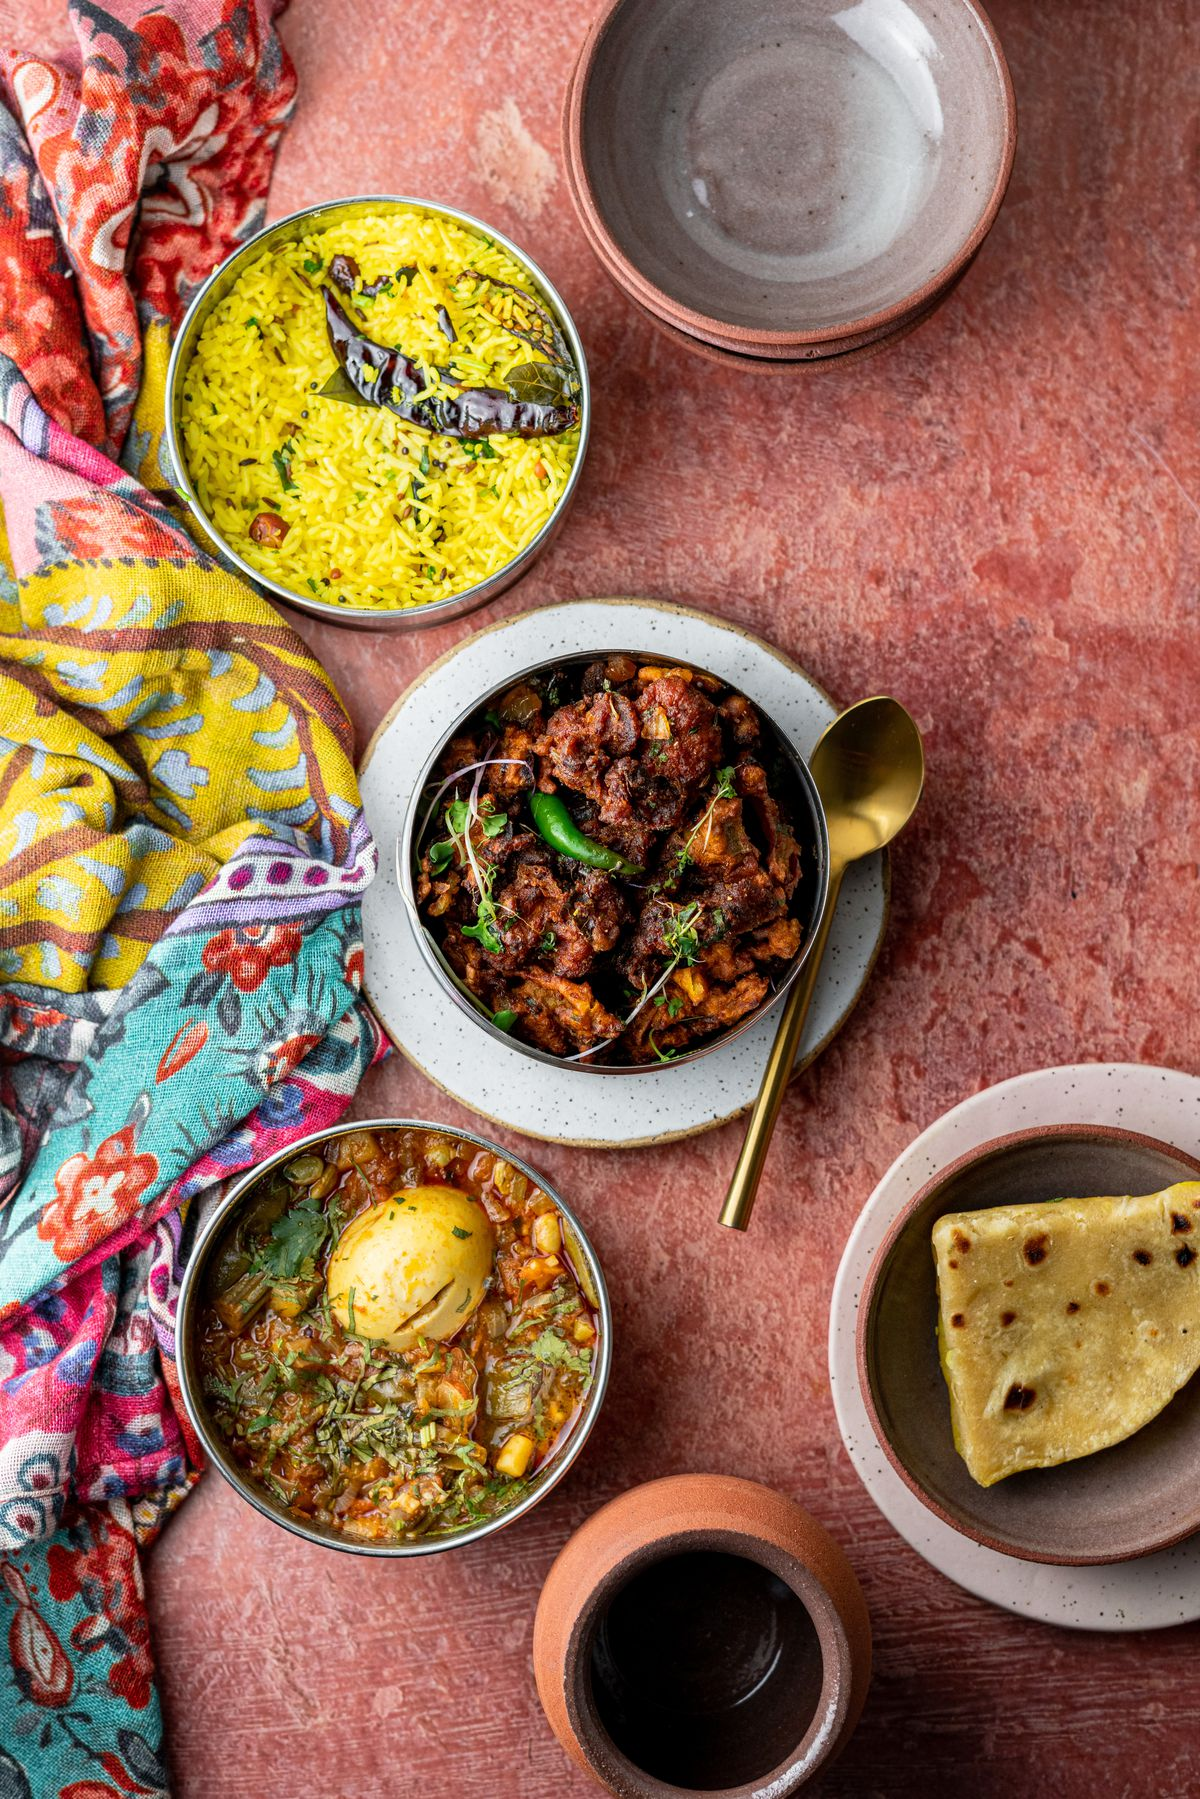 Four indian food dishes placed on a red background